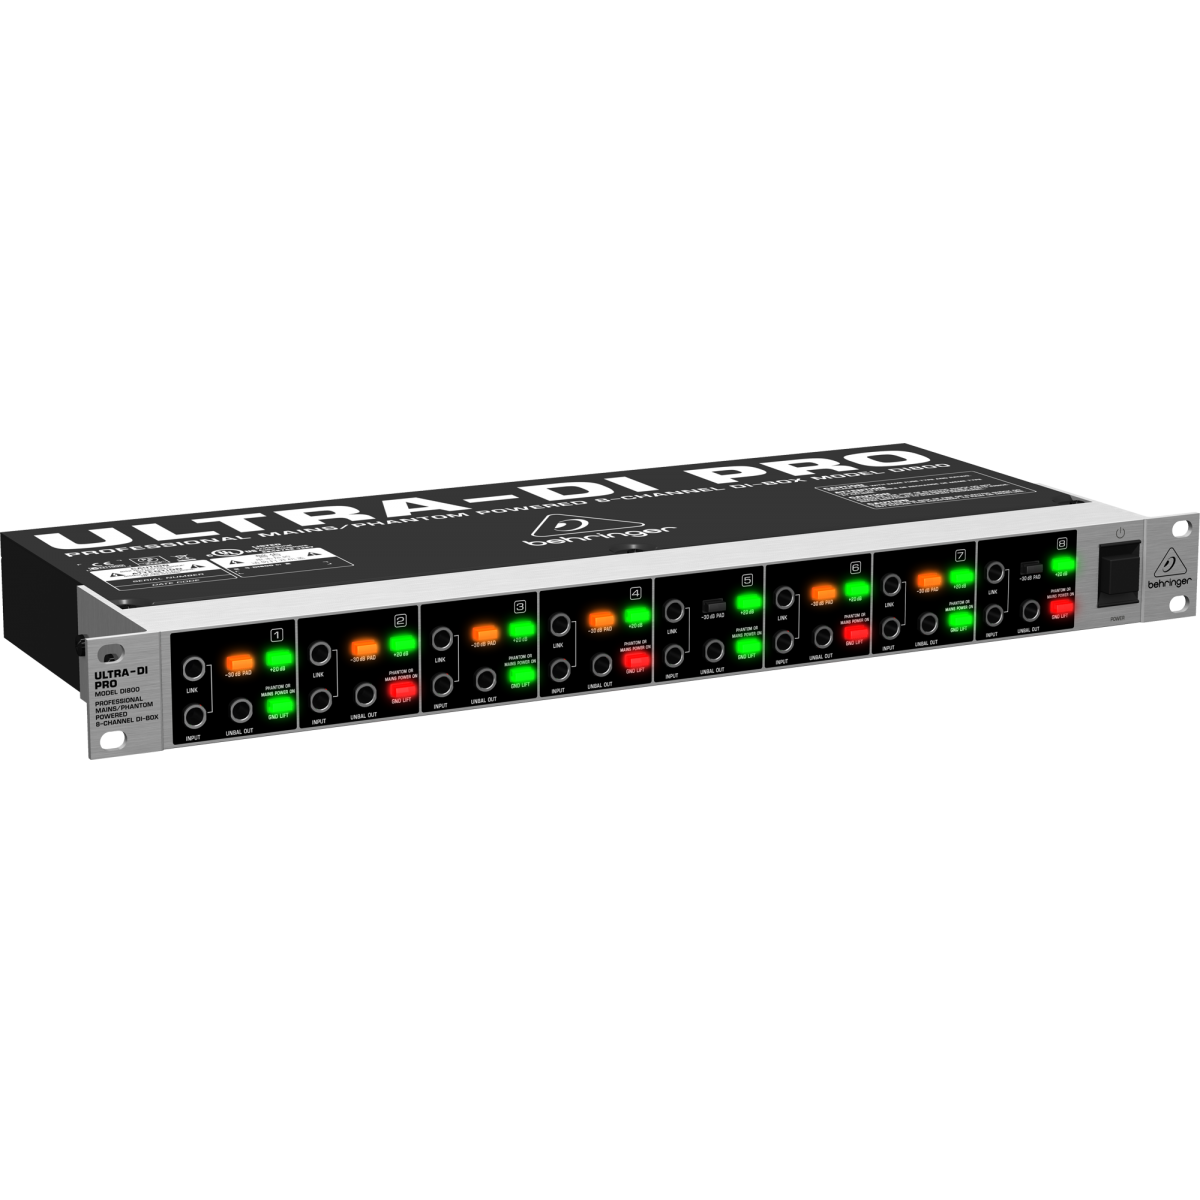 Direct Box Ativo Behringer Ultra-di Di800 P/ Rack